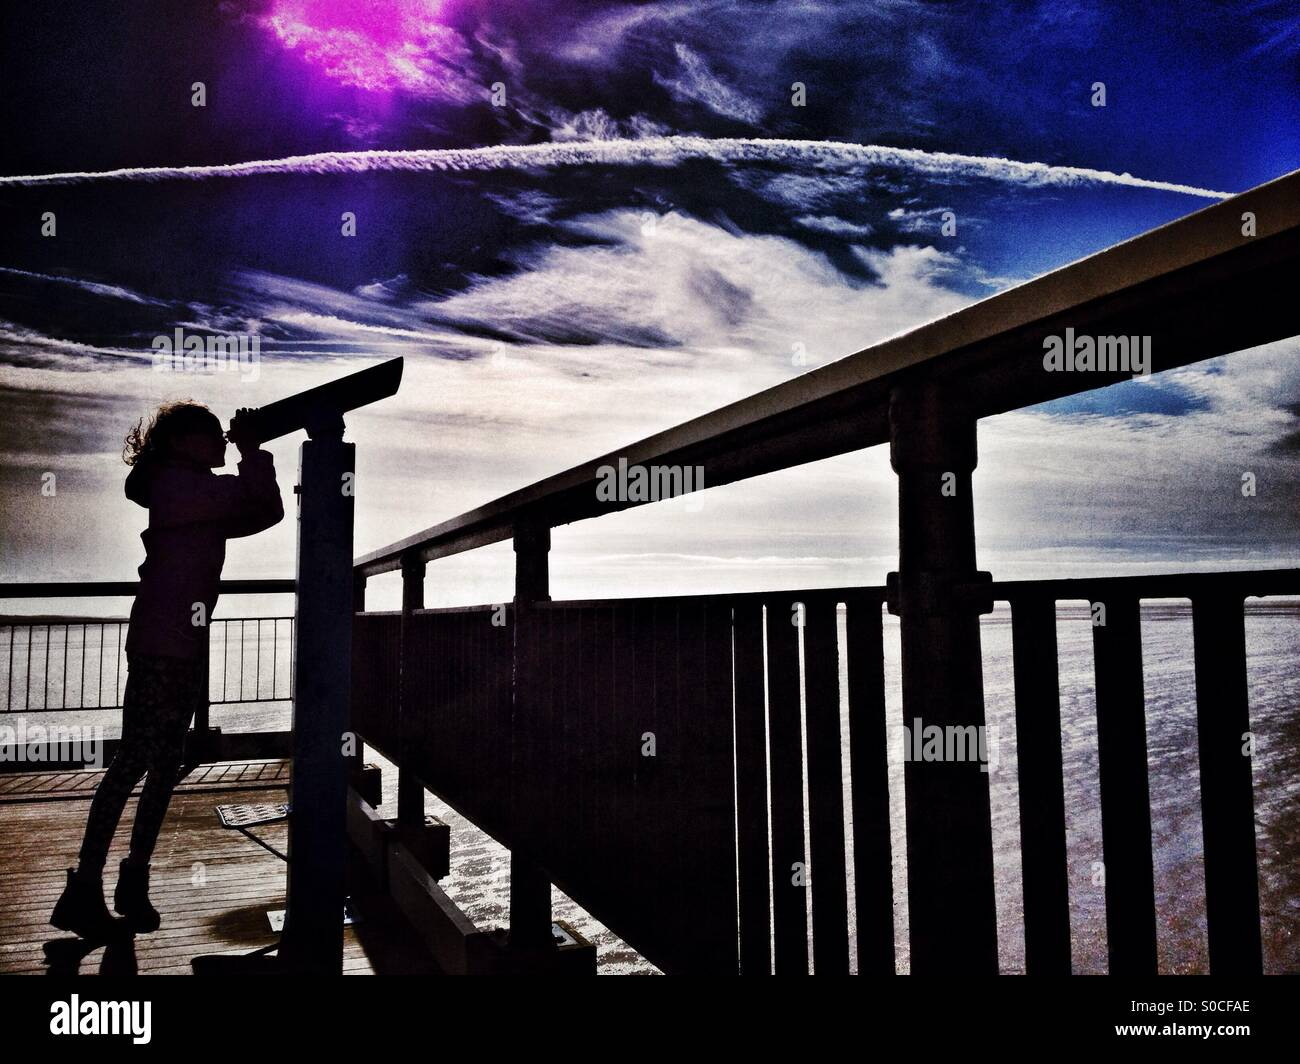 Young girl in silhouette using telescope at end of pier - Stock Image